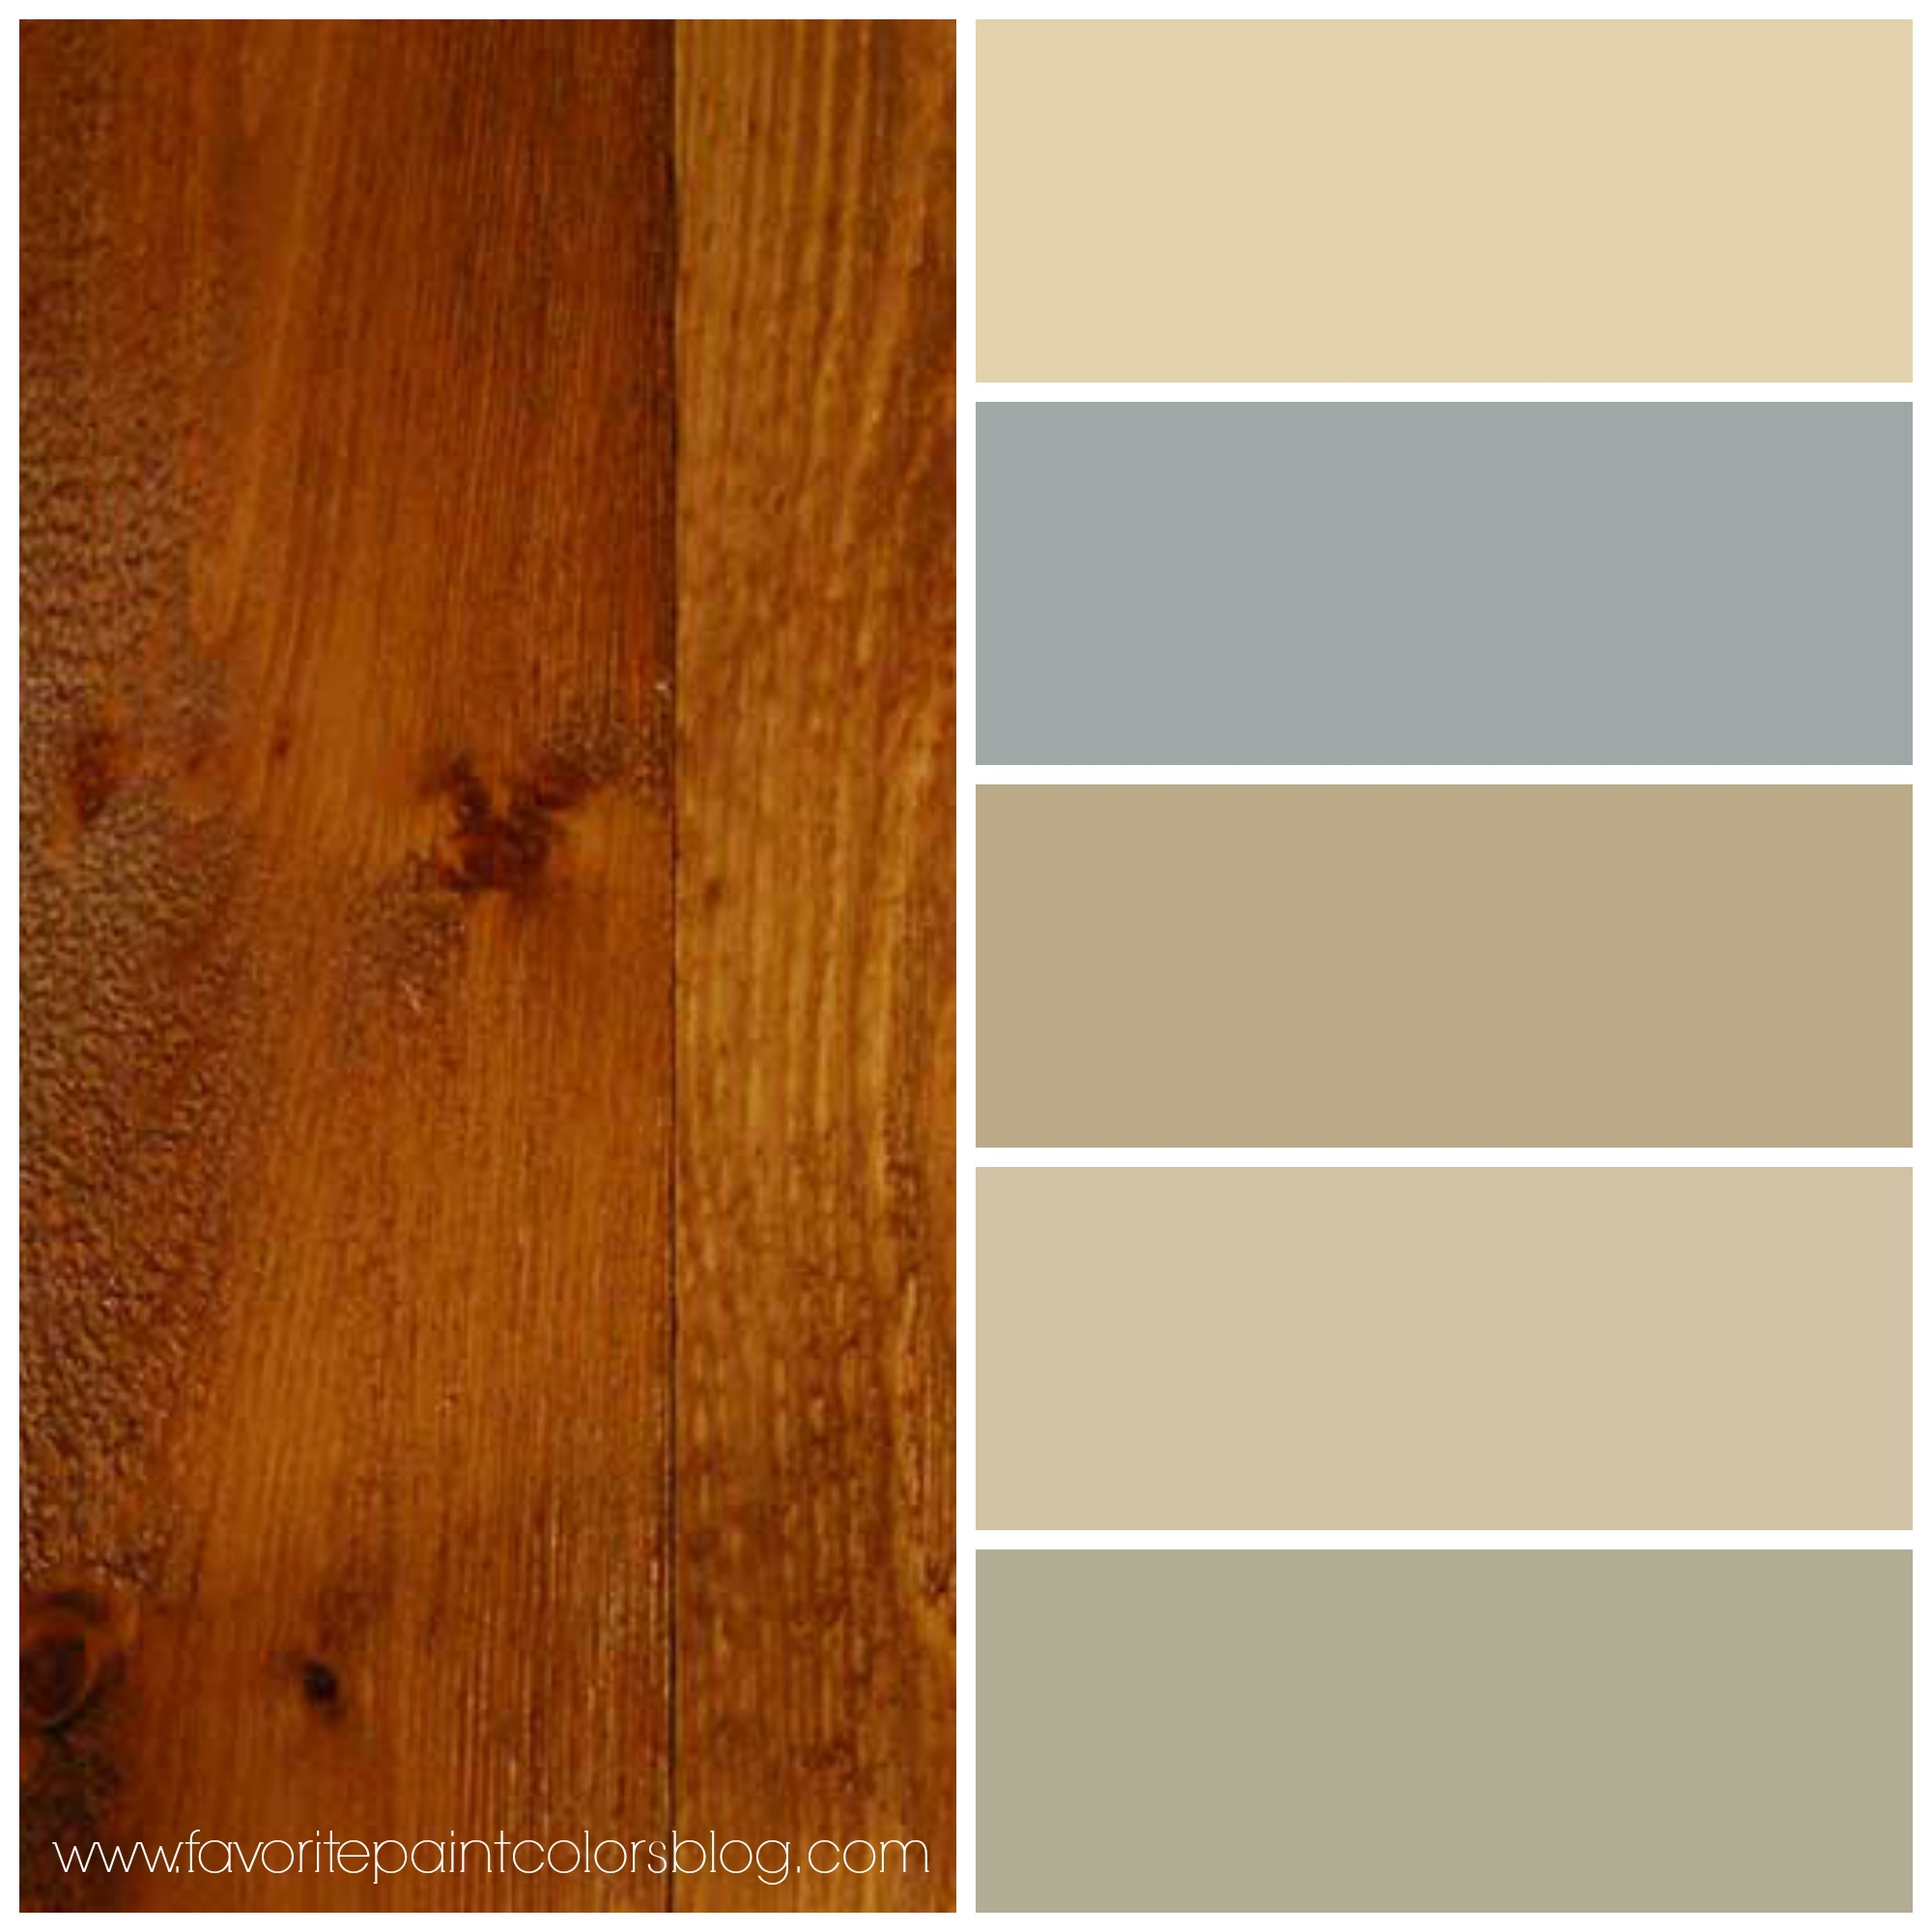 Wood trim favorite paint colors blog for Best paint for wooden floors